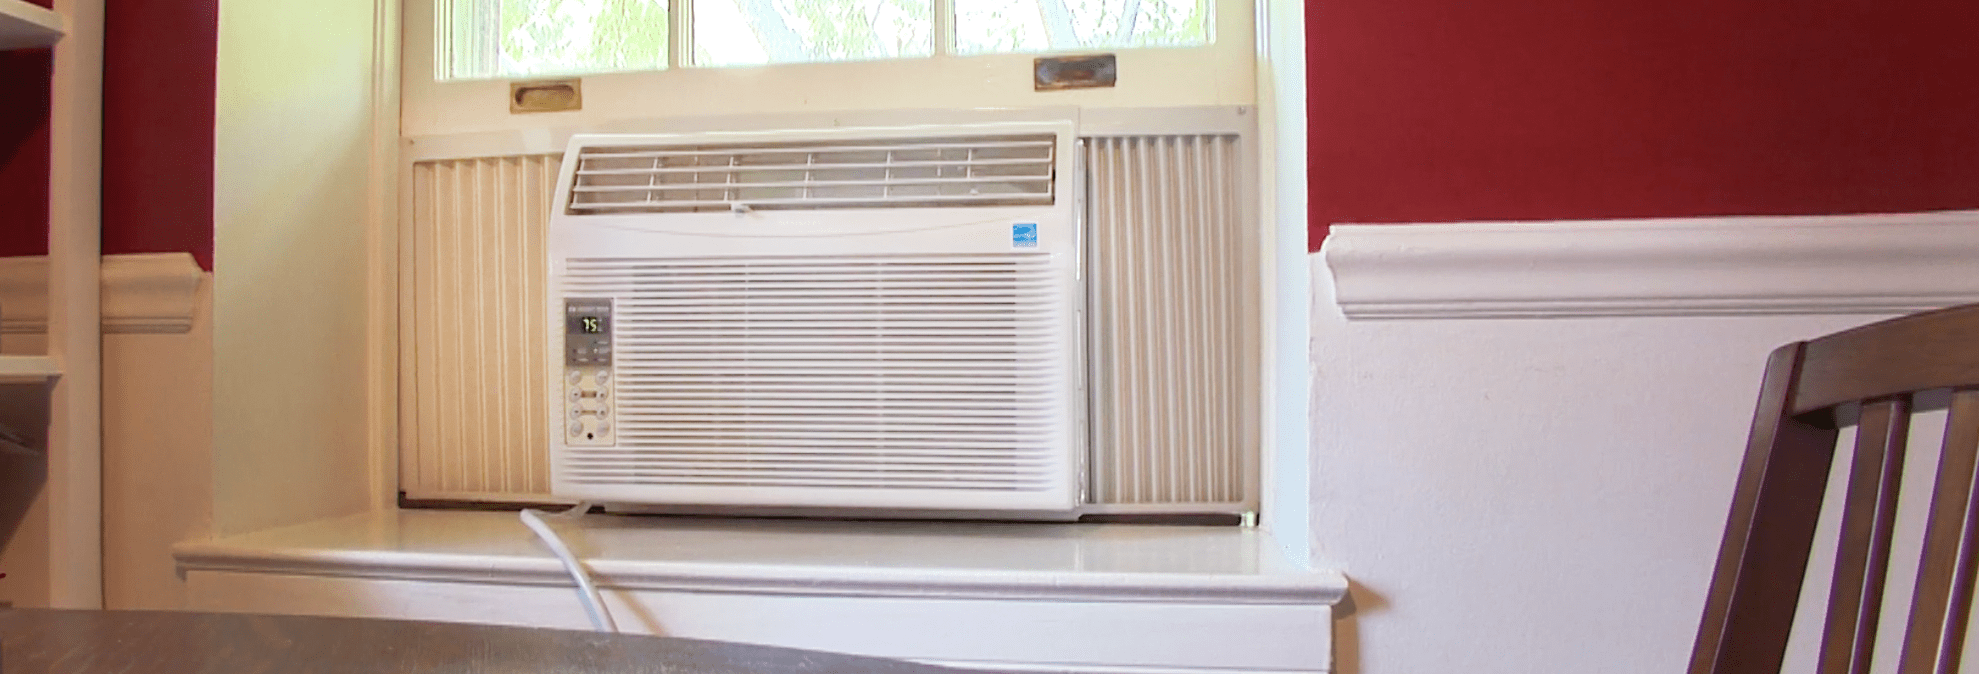 Basement window air conditioning units - Basement Window Air Conditioning Units 58